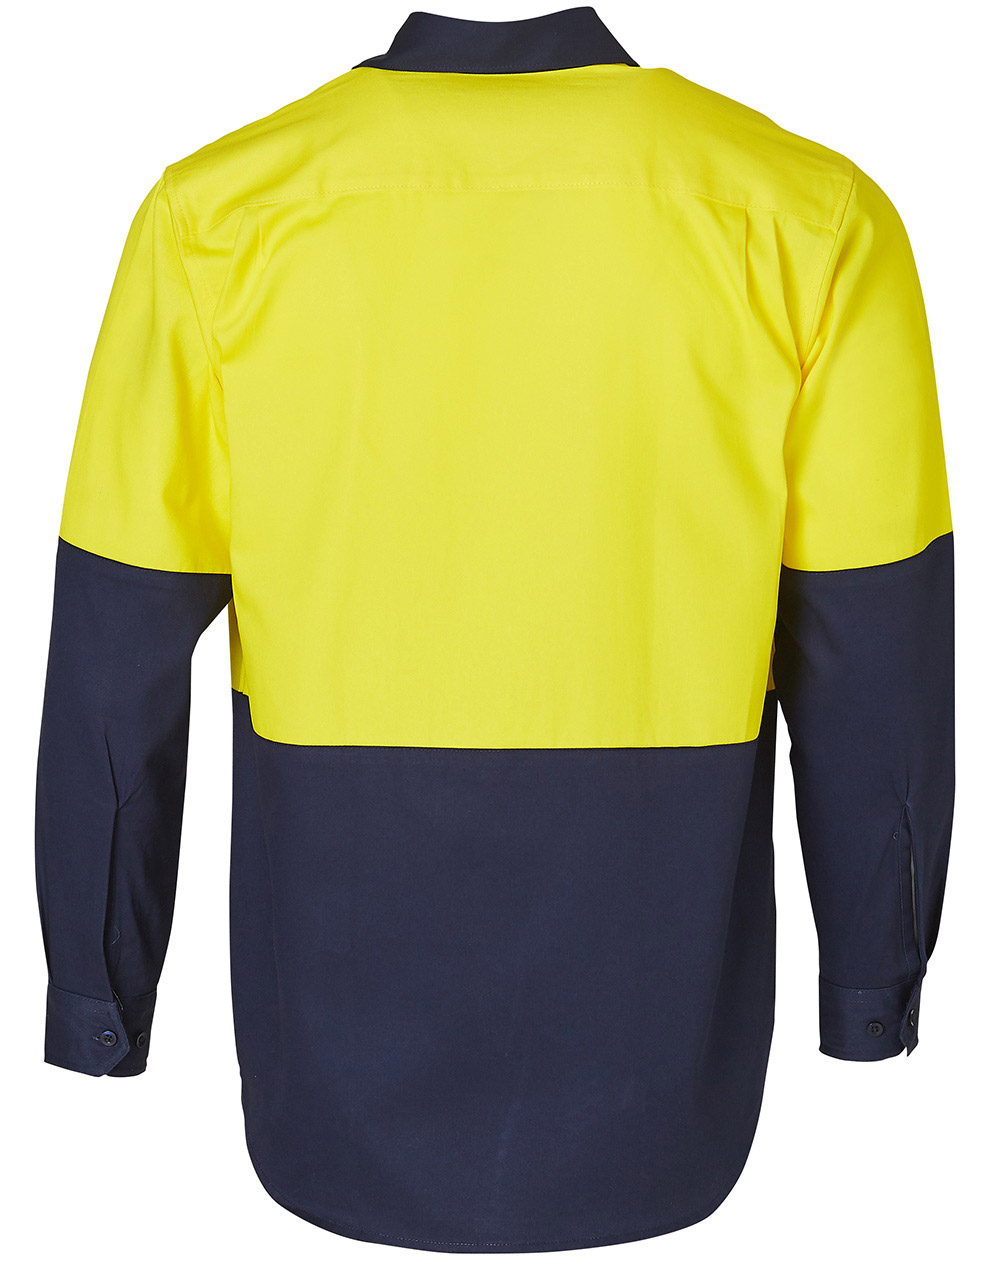 https://s3-ap-southeast-1.amazonaws.com/ws-imgs/WORKWEAR/SW54_YellowNavy_Back.jpg